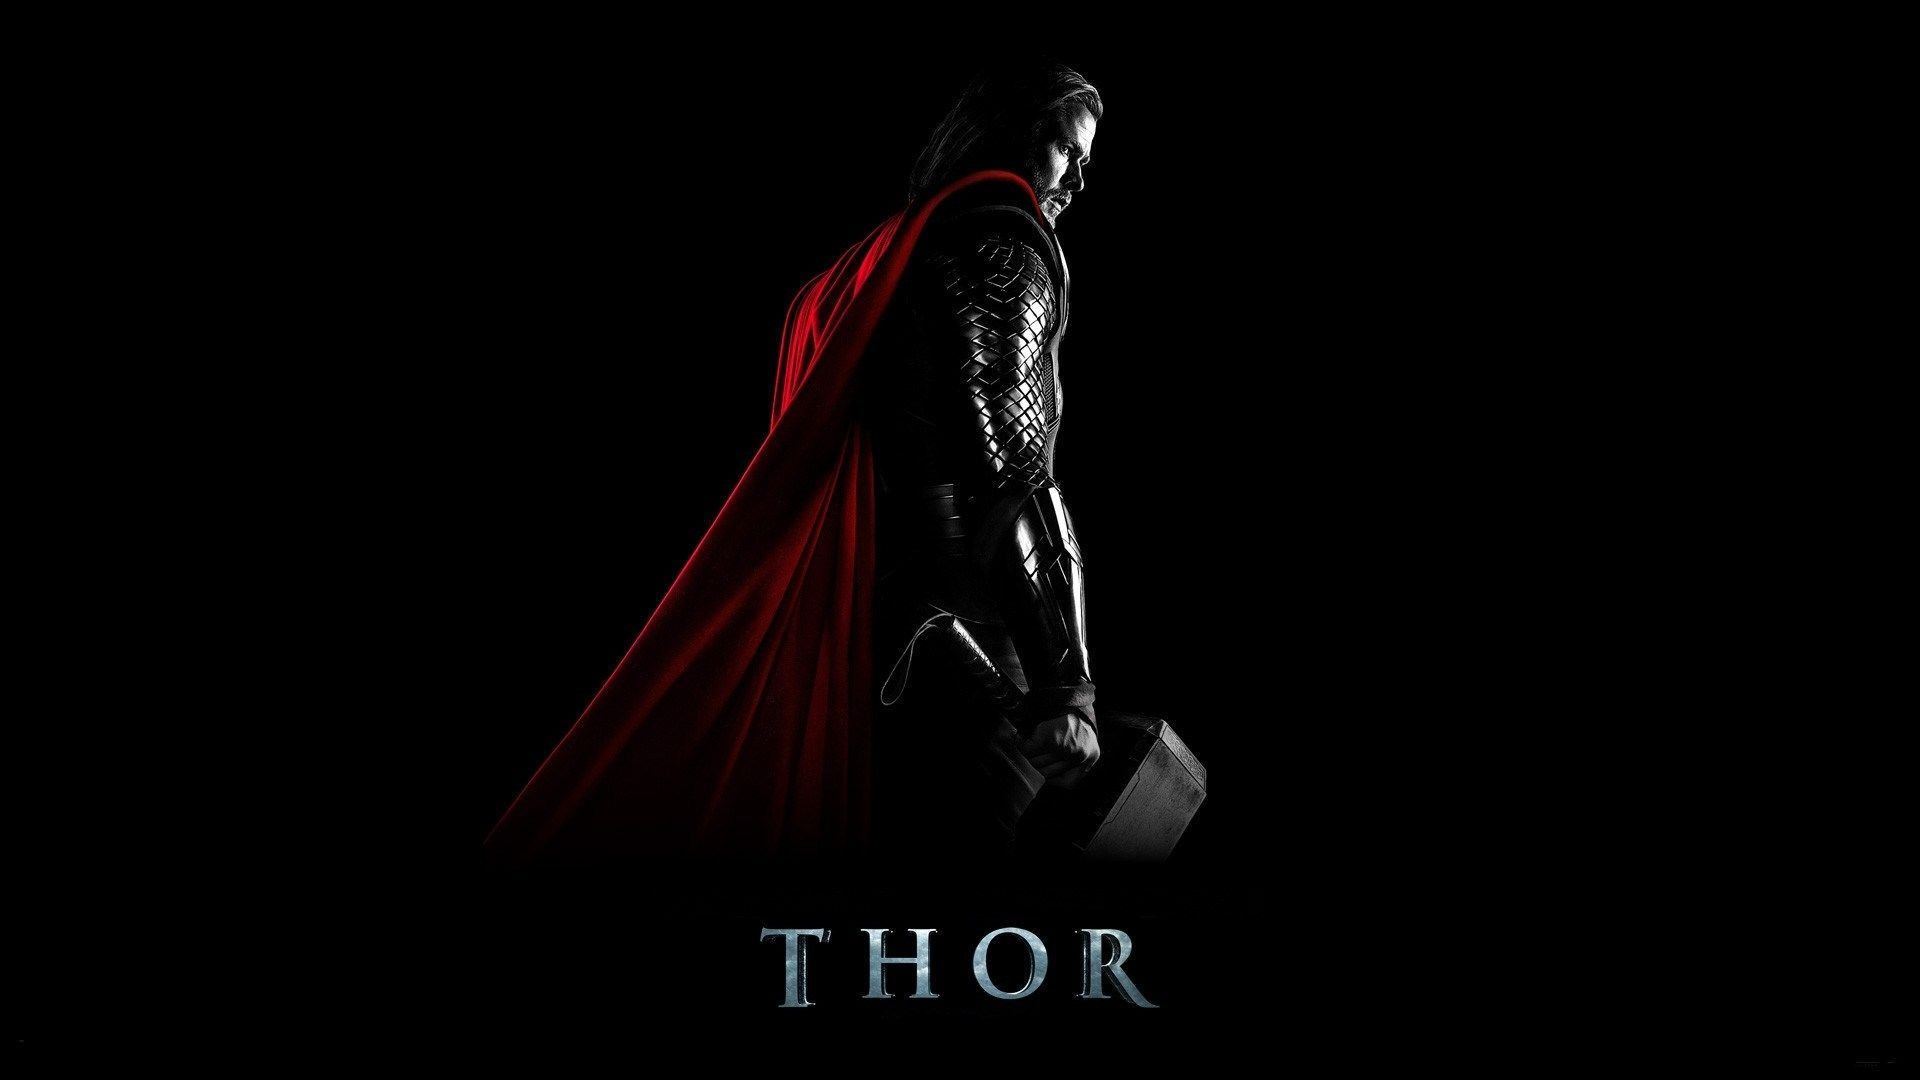 hd wallpapers of thor